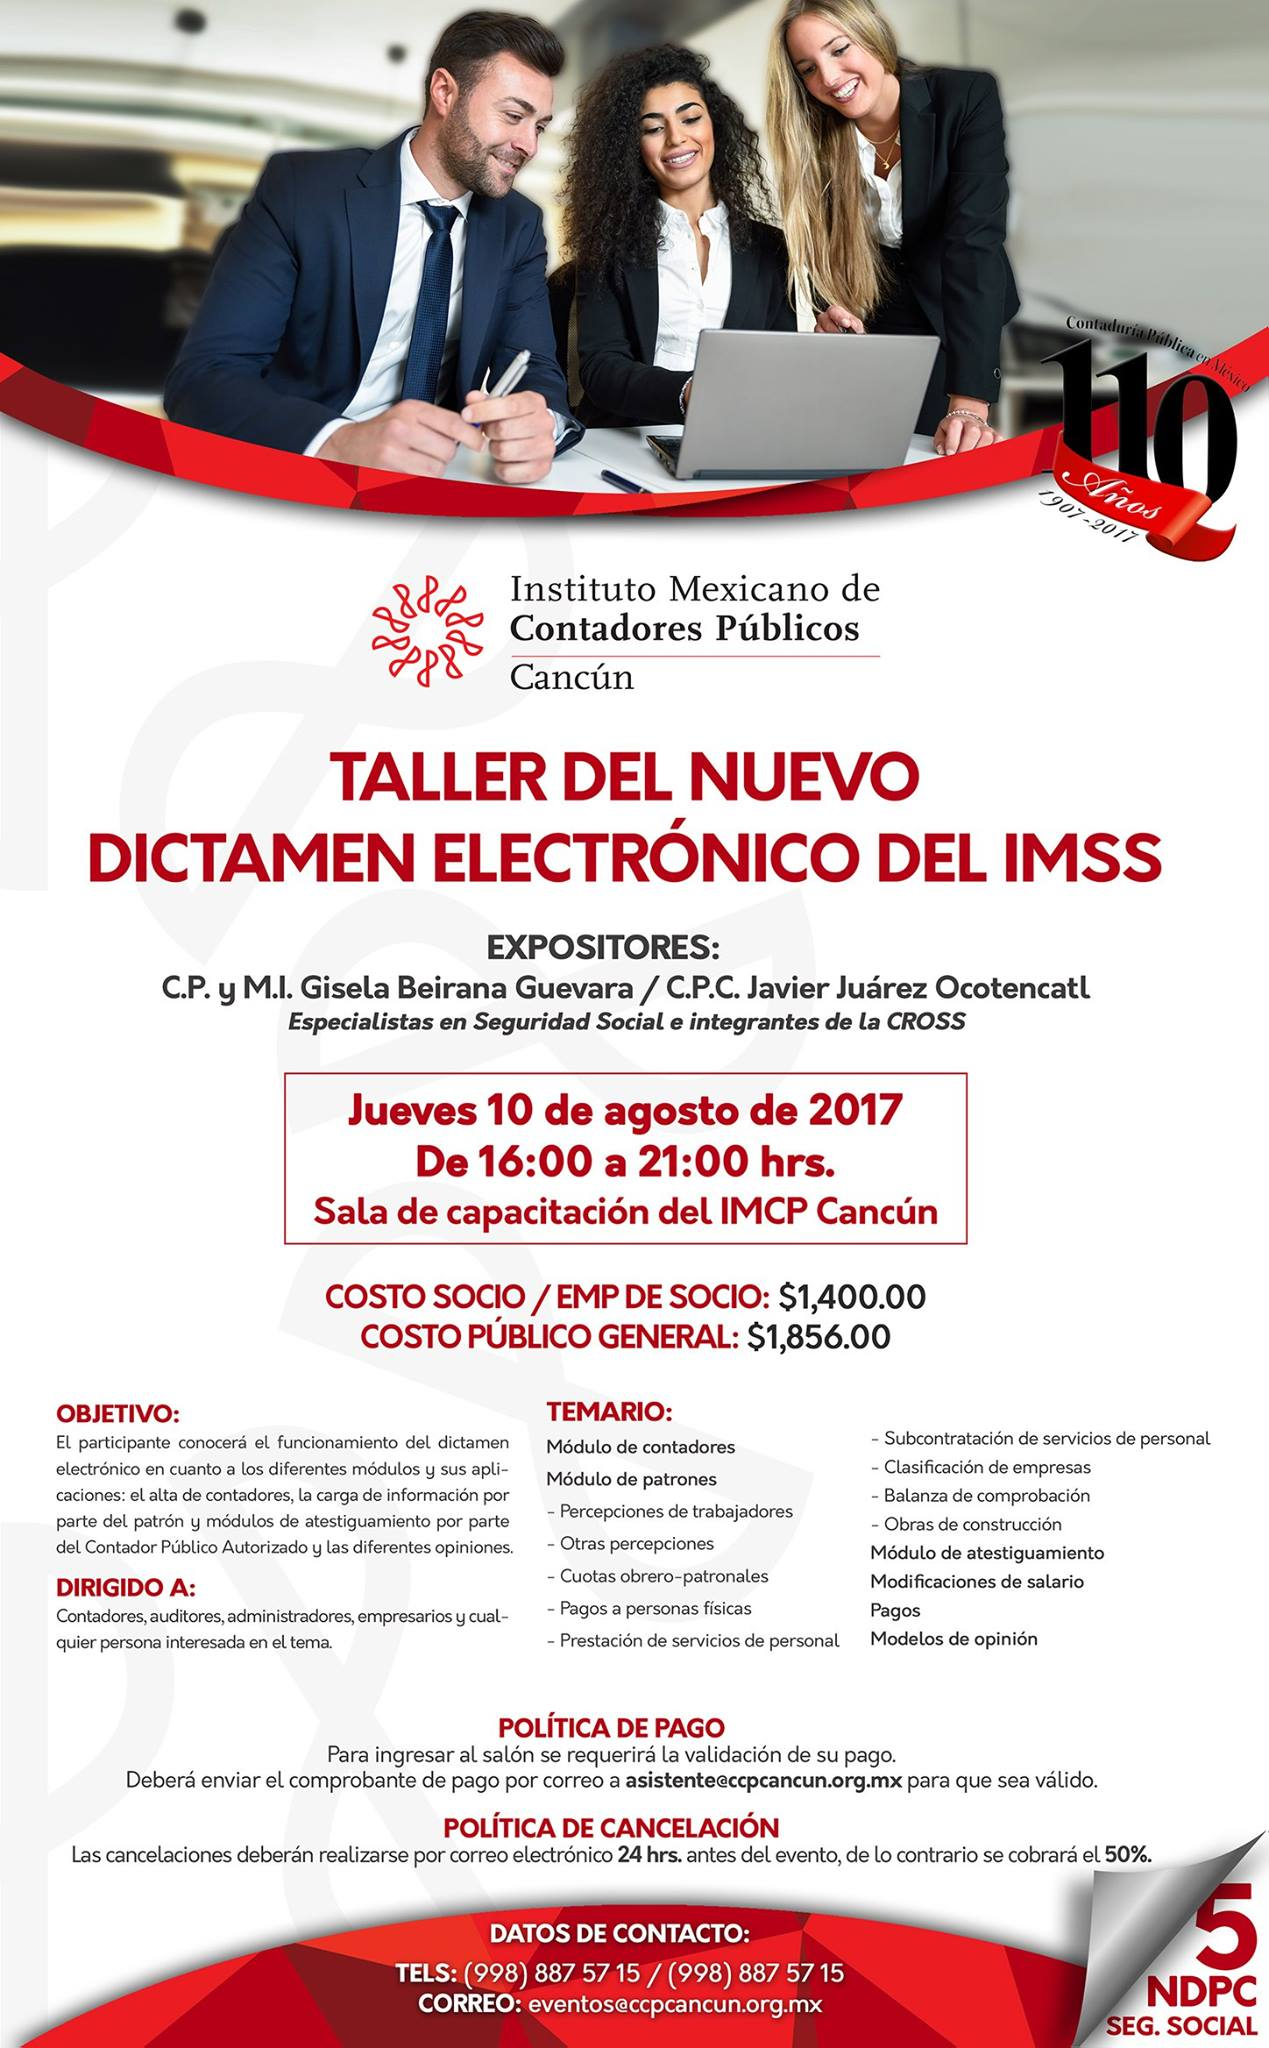 Dictamen electronico